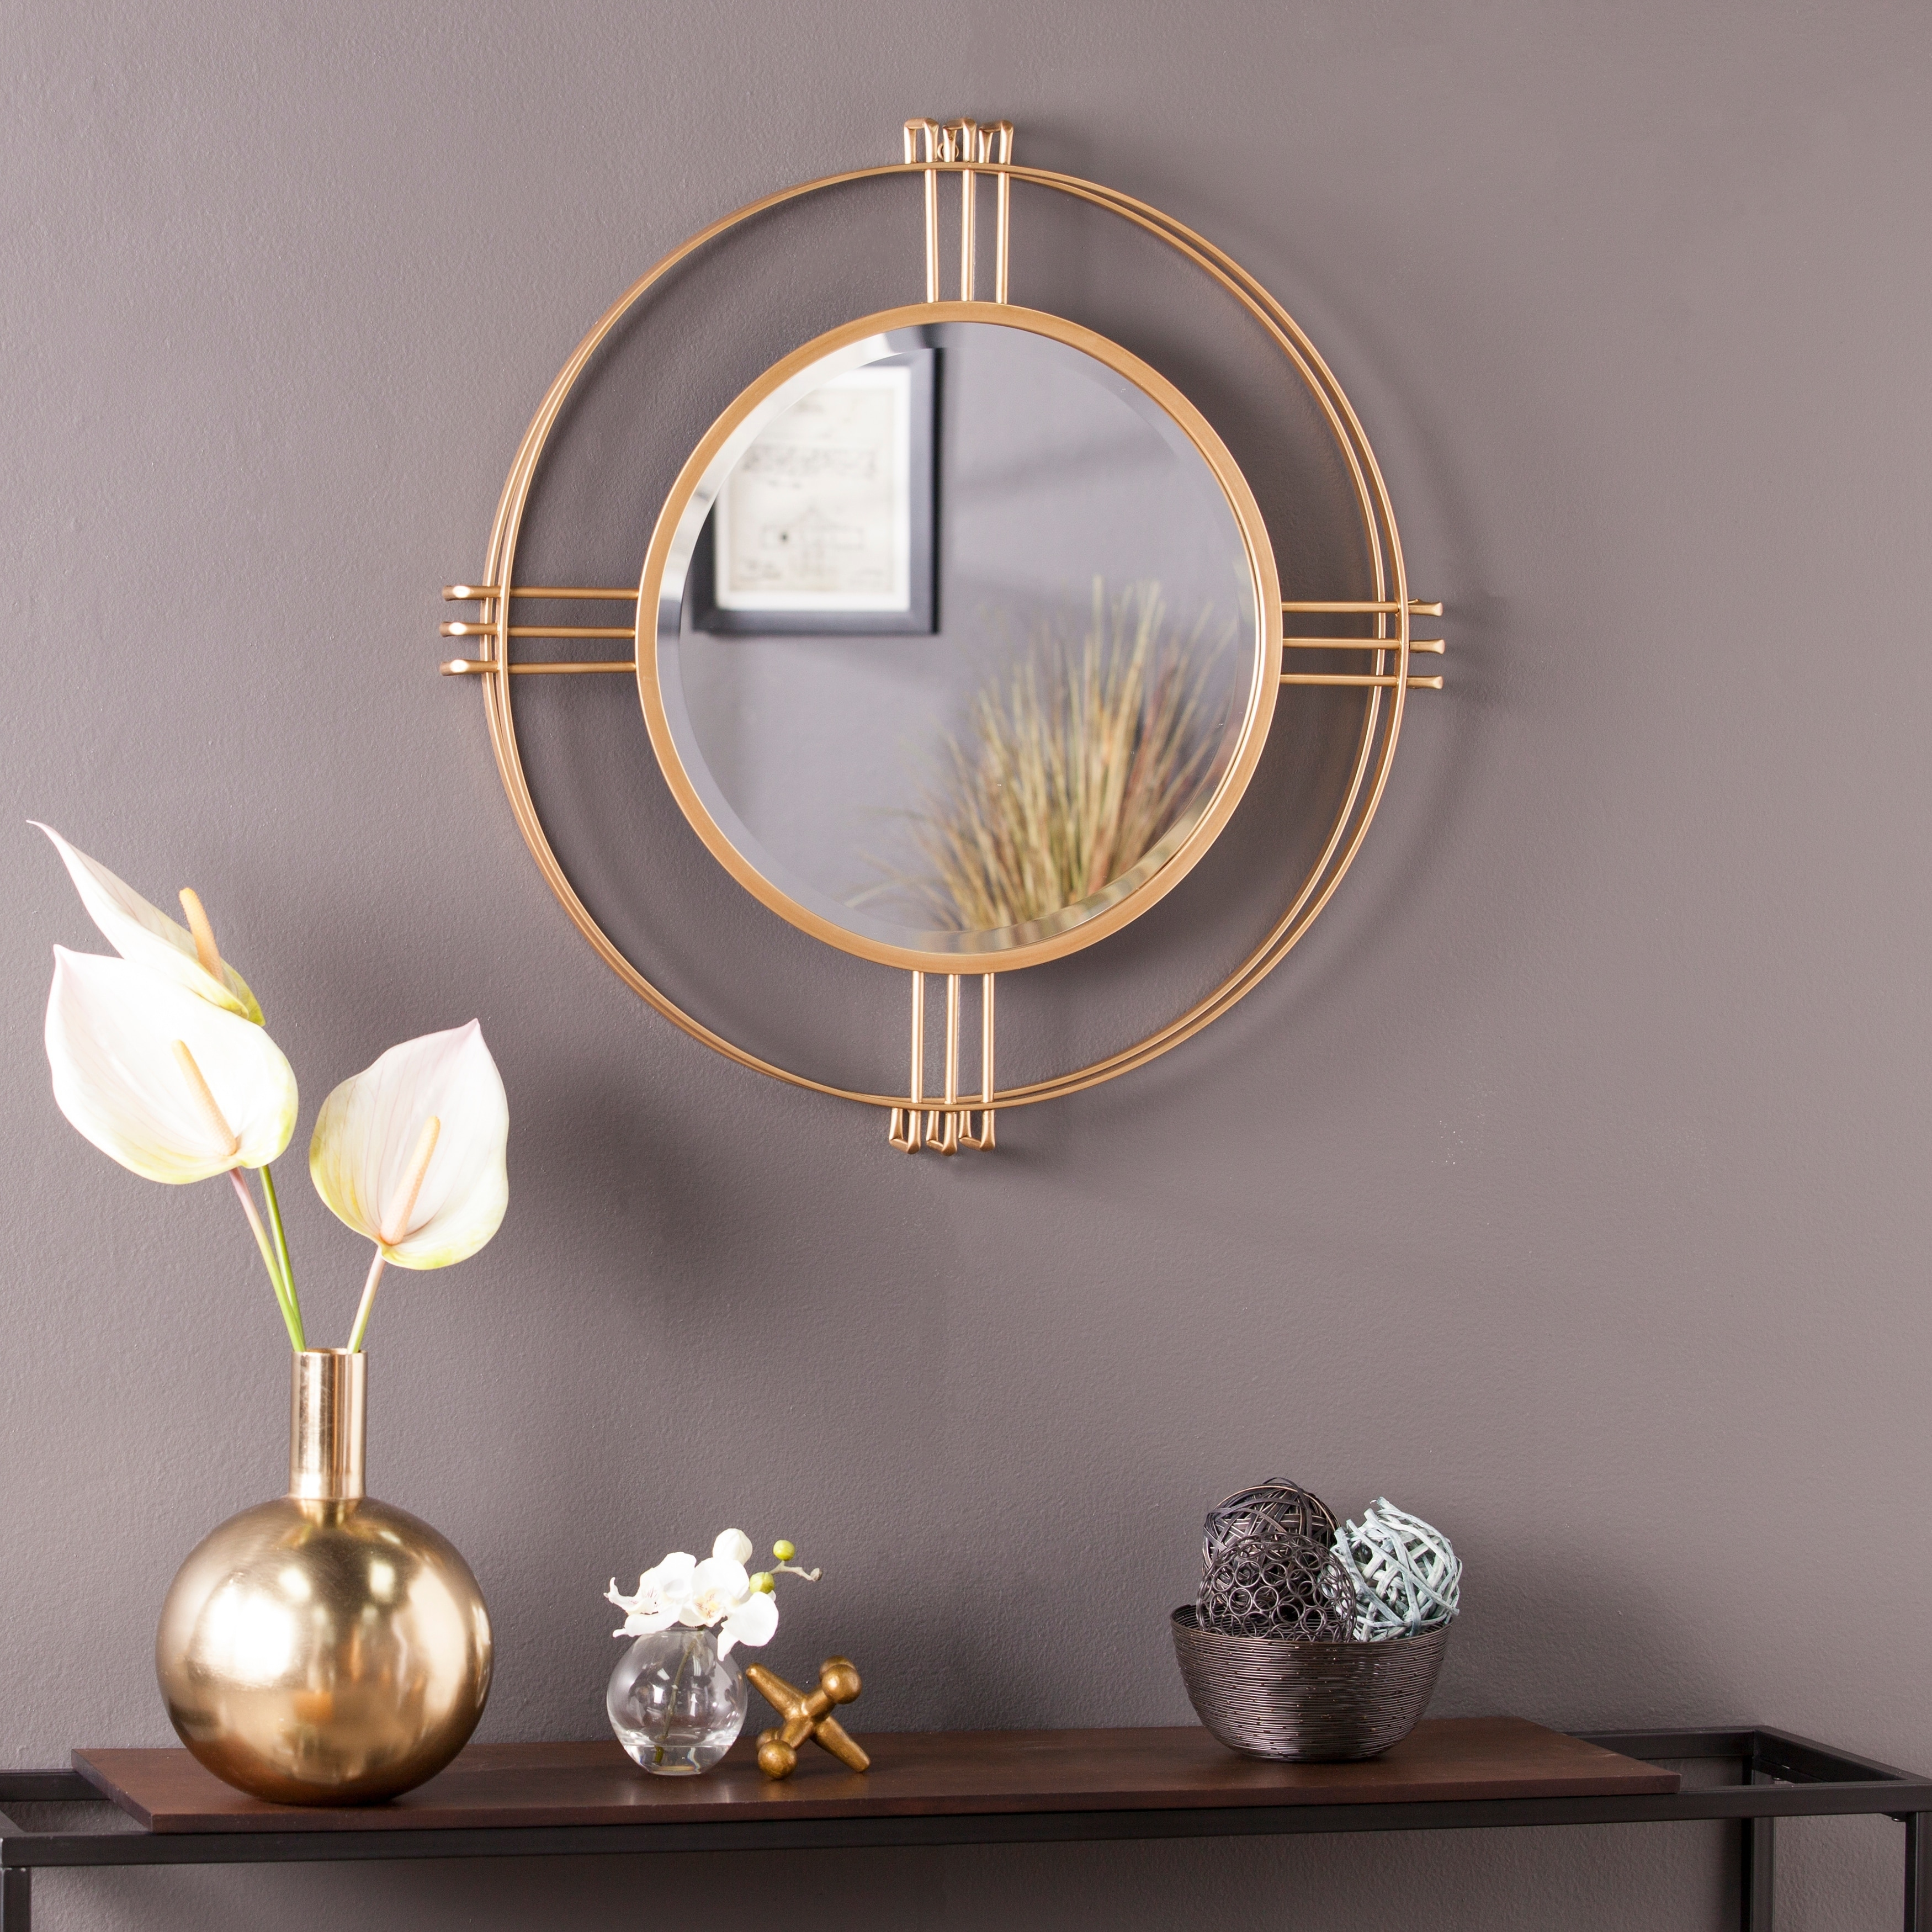 Shop Silver Orchid Iness Art Deco Gold Round Wall Mirror Overstock 28896144